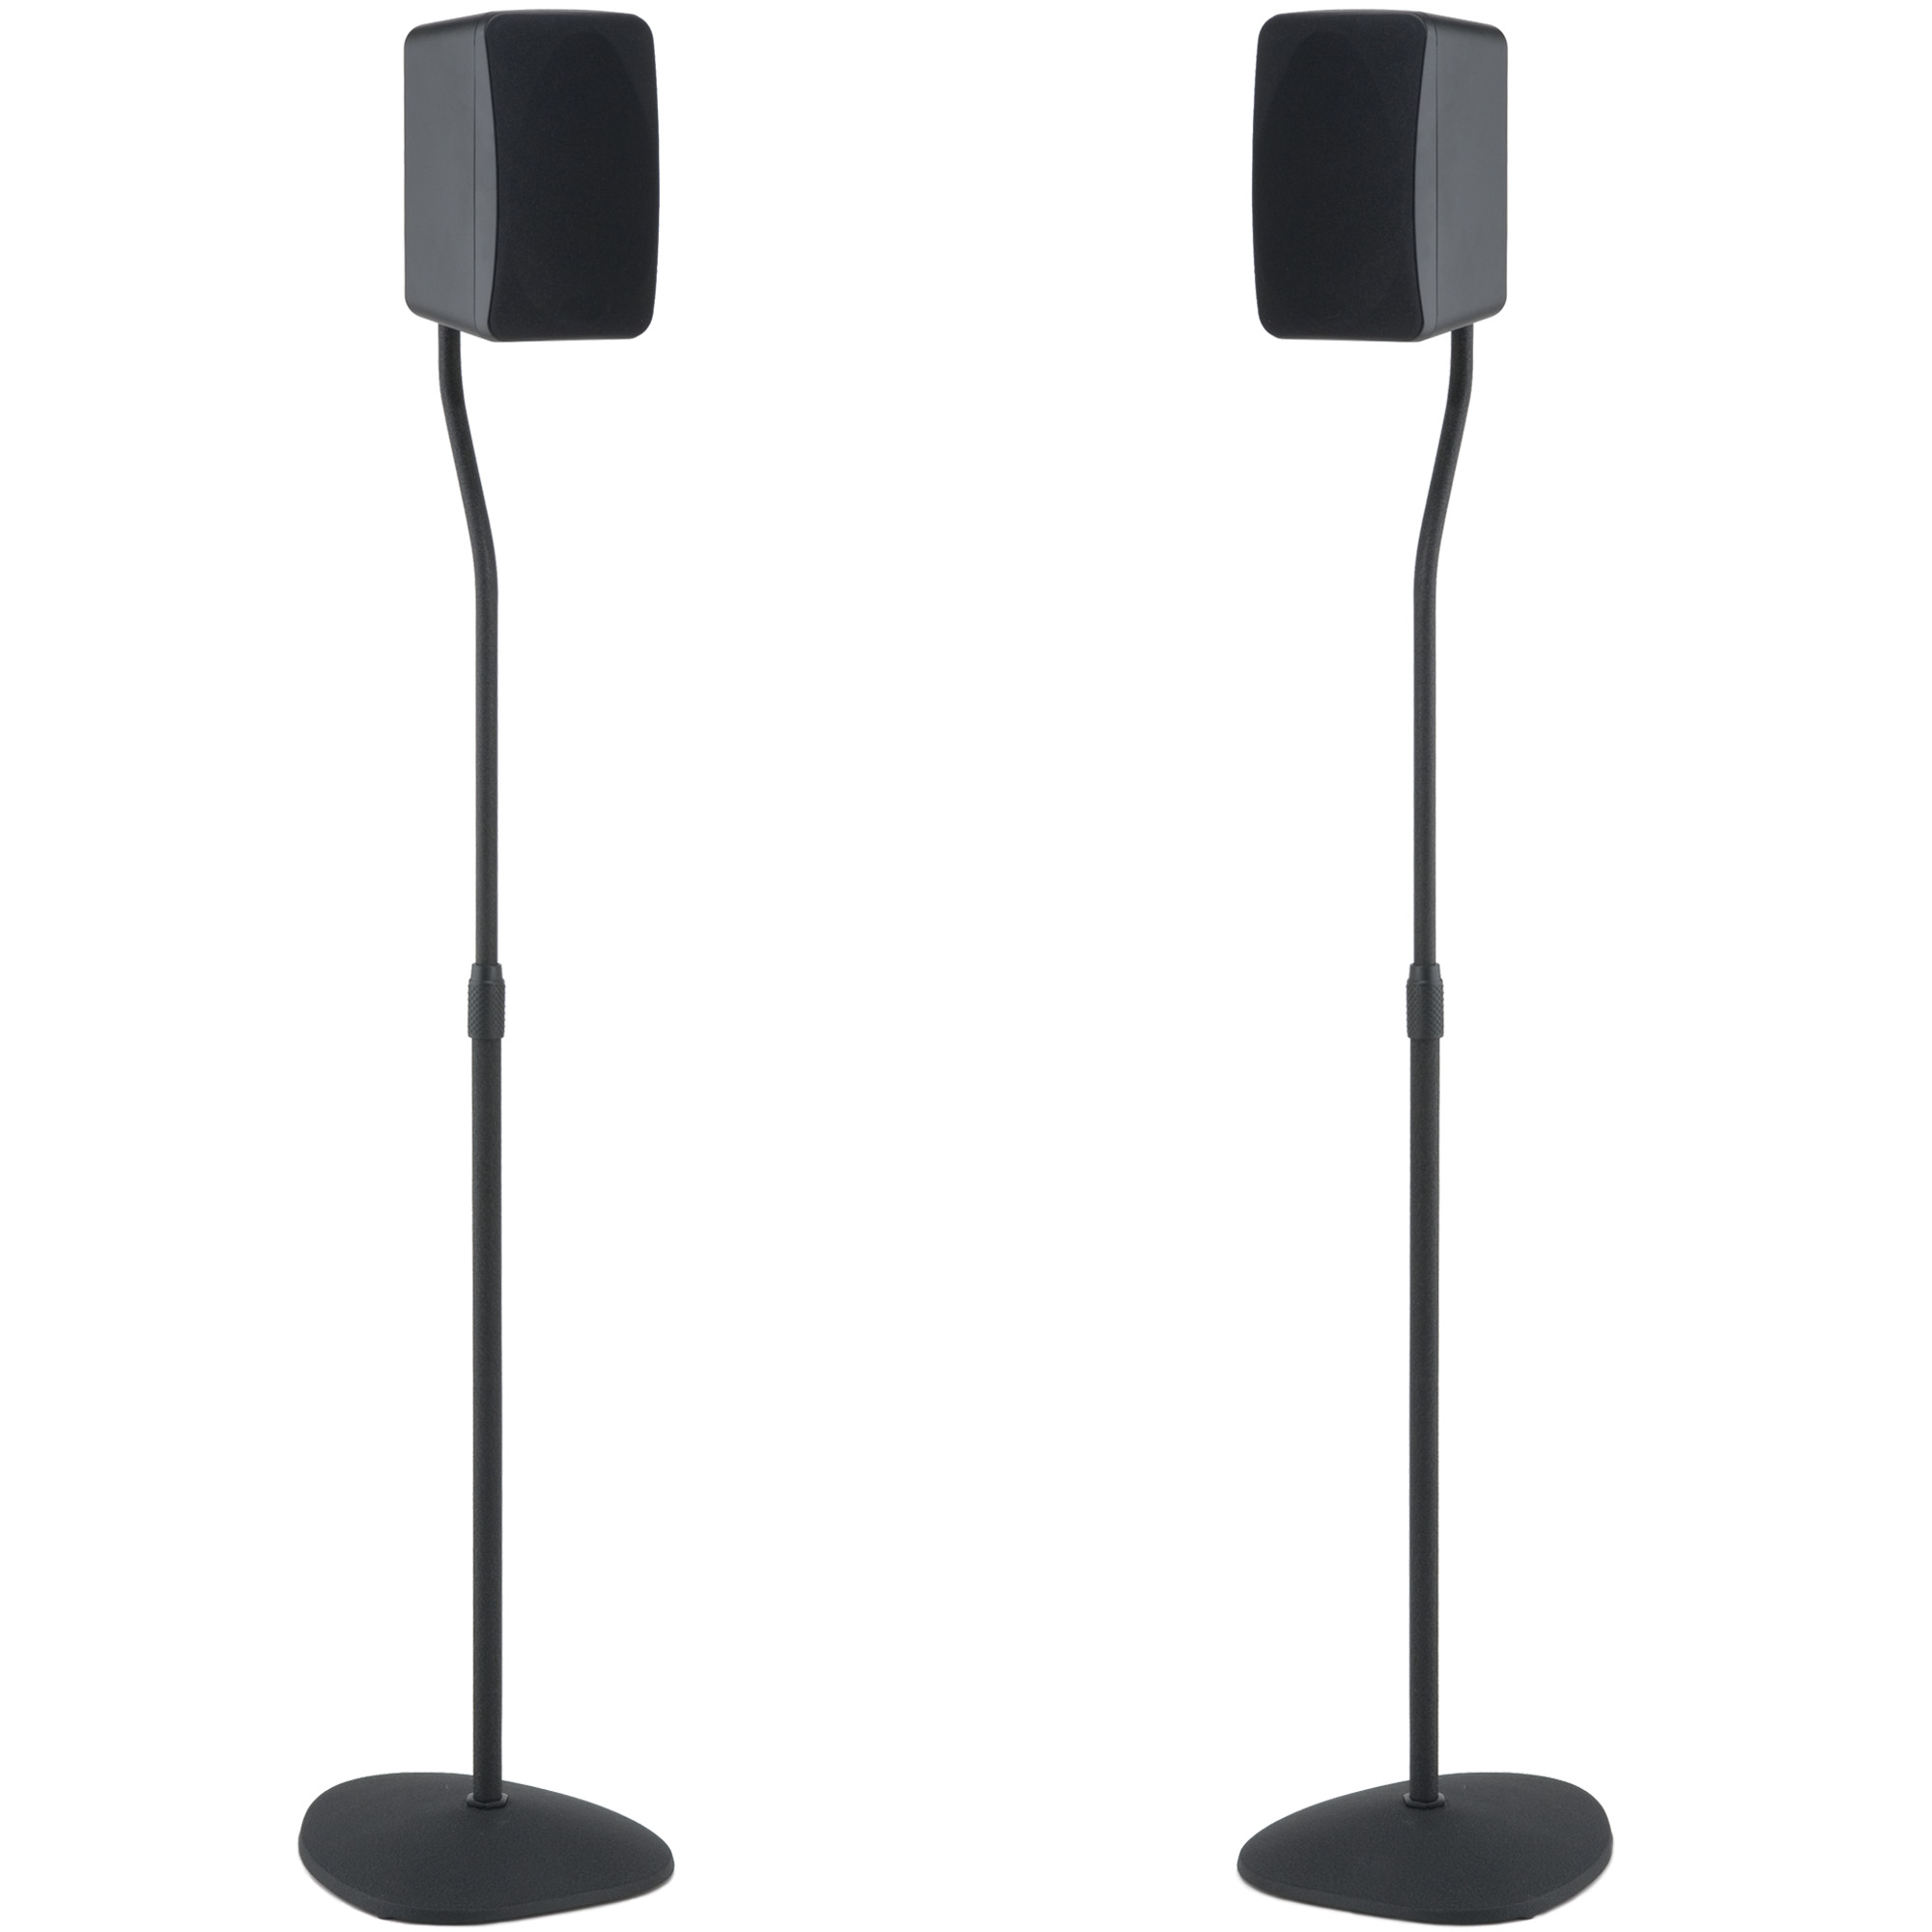 SANUS Adjustable Height Speaker Stands With Universal Design For Satellite Bookshelf Speakers